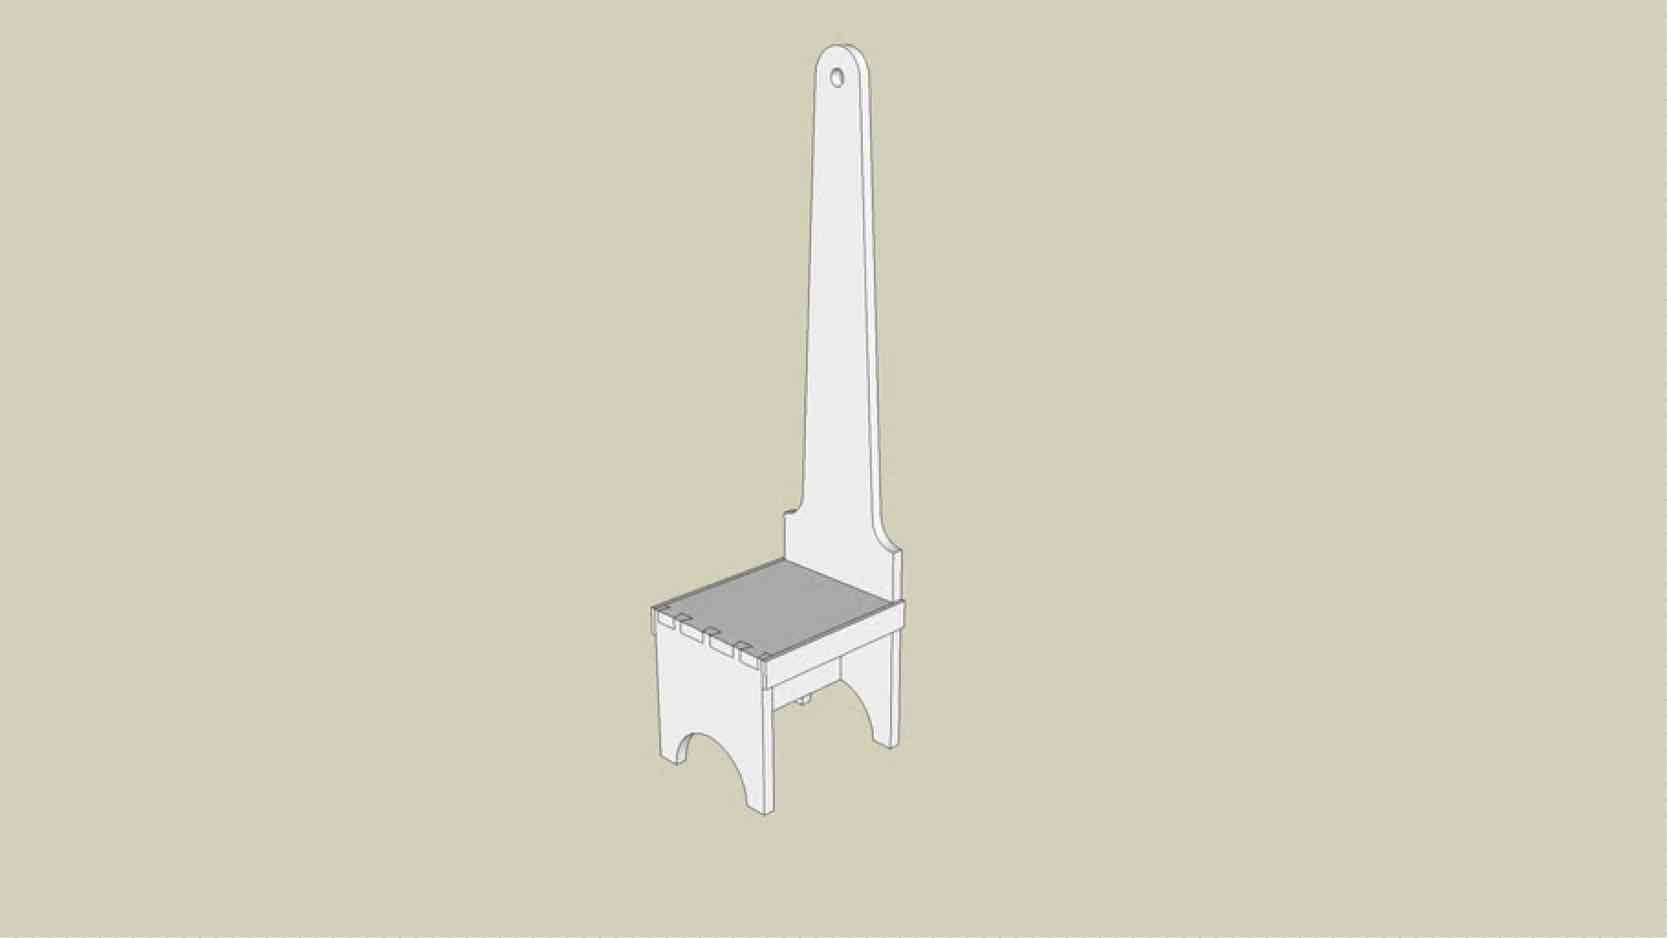 sketchup,stools,step stools,Google 3D,3-D warehouse,furniture,drawings,free woodworking plans,projects,do it yourself,woodworkers